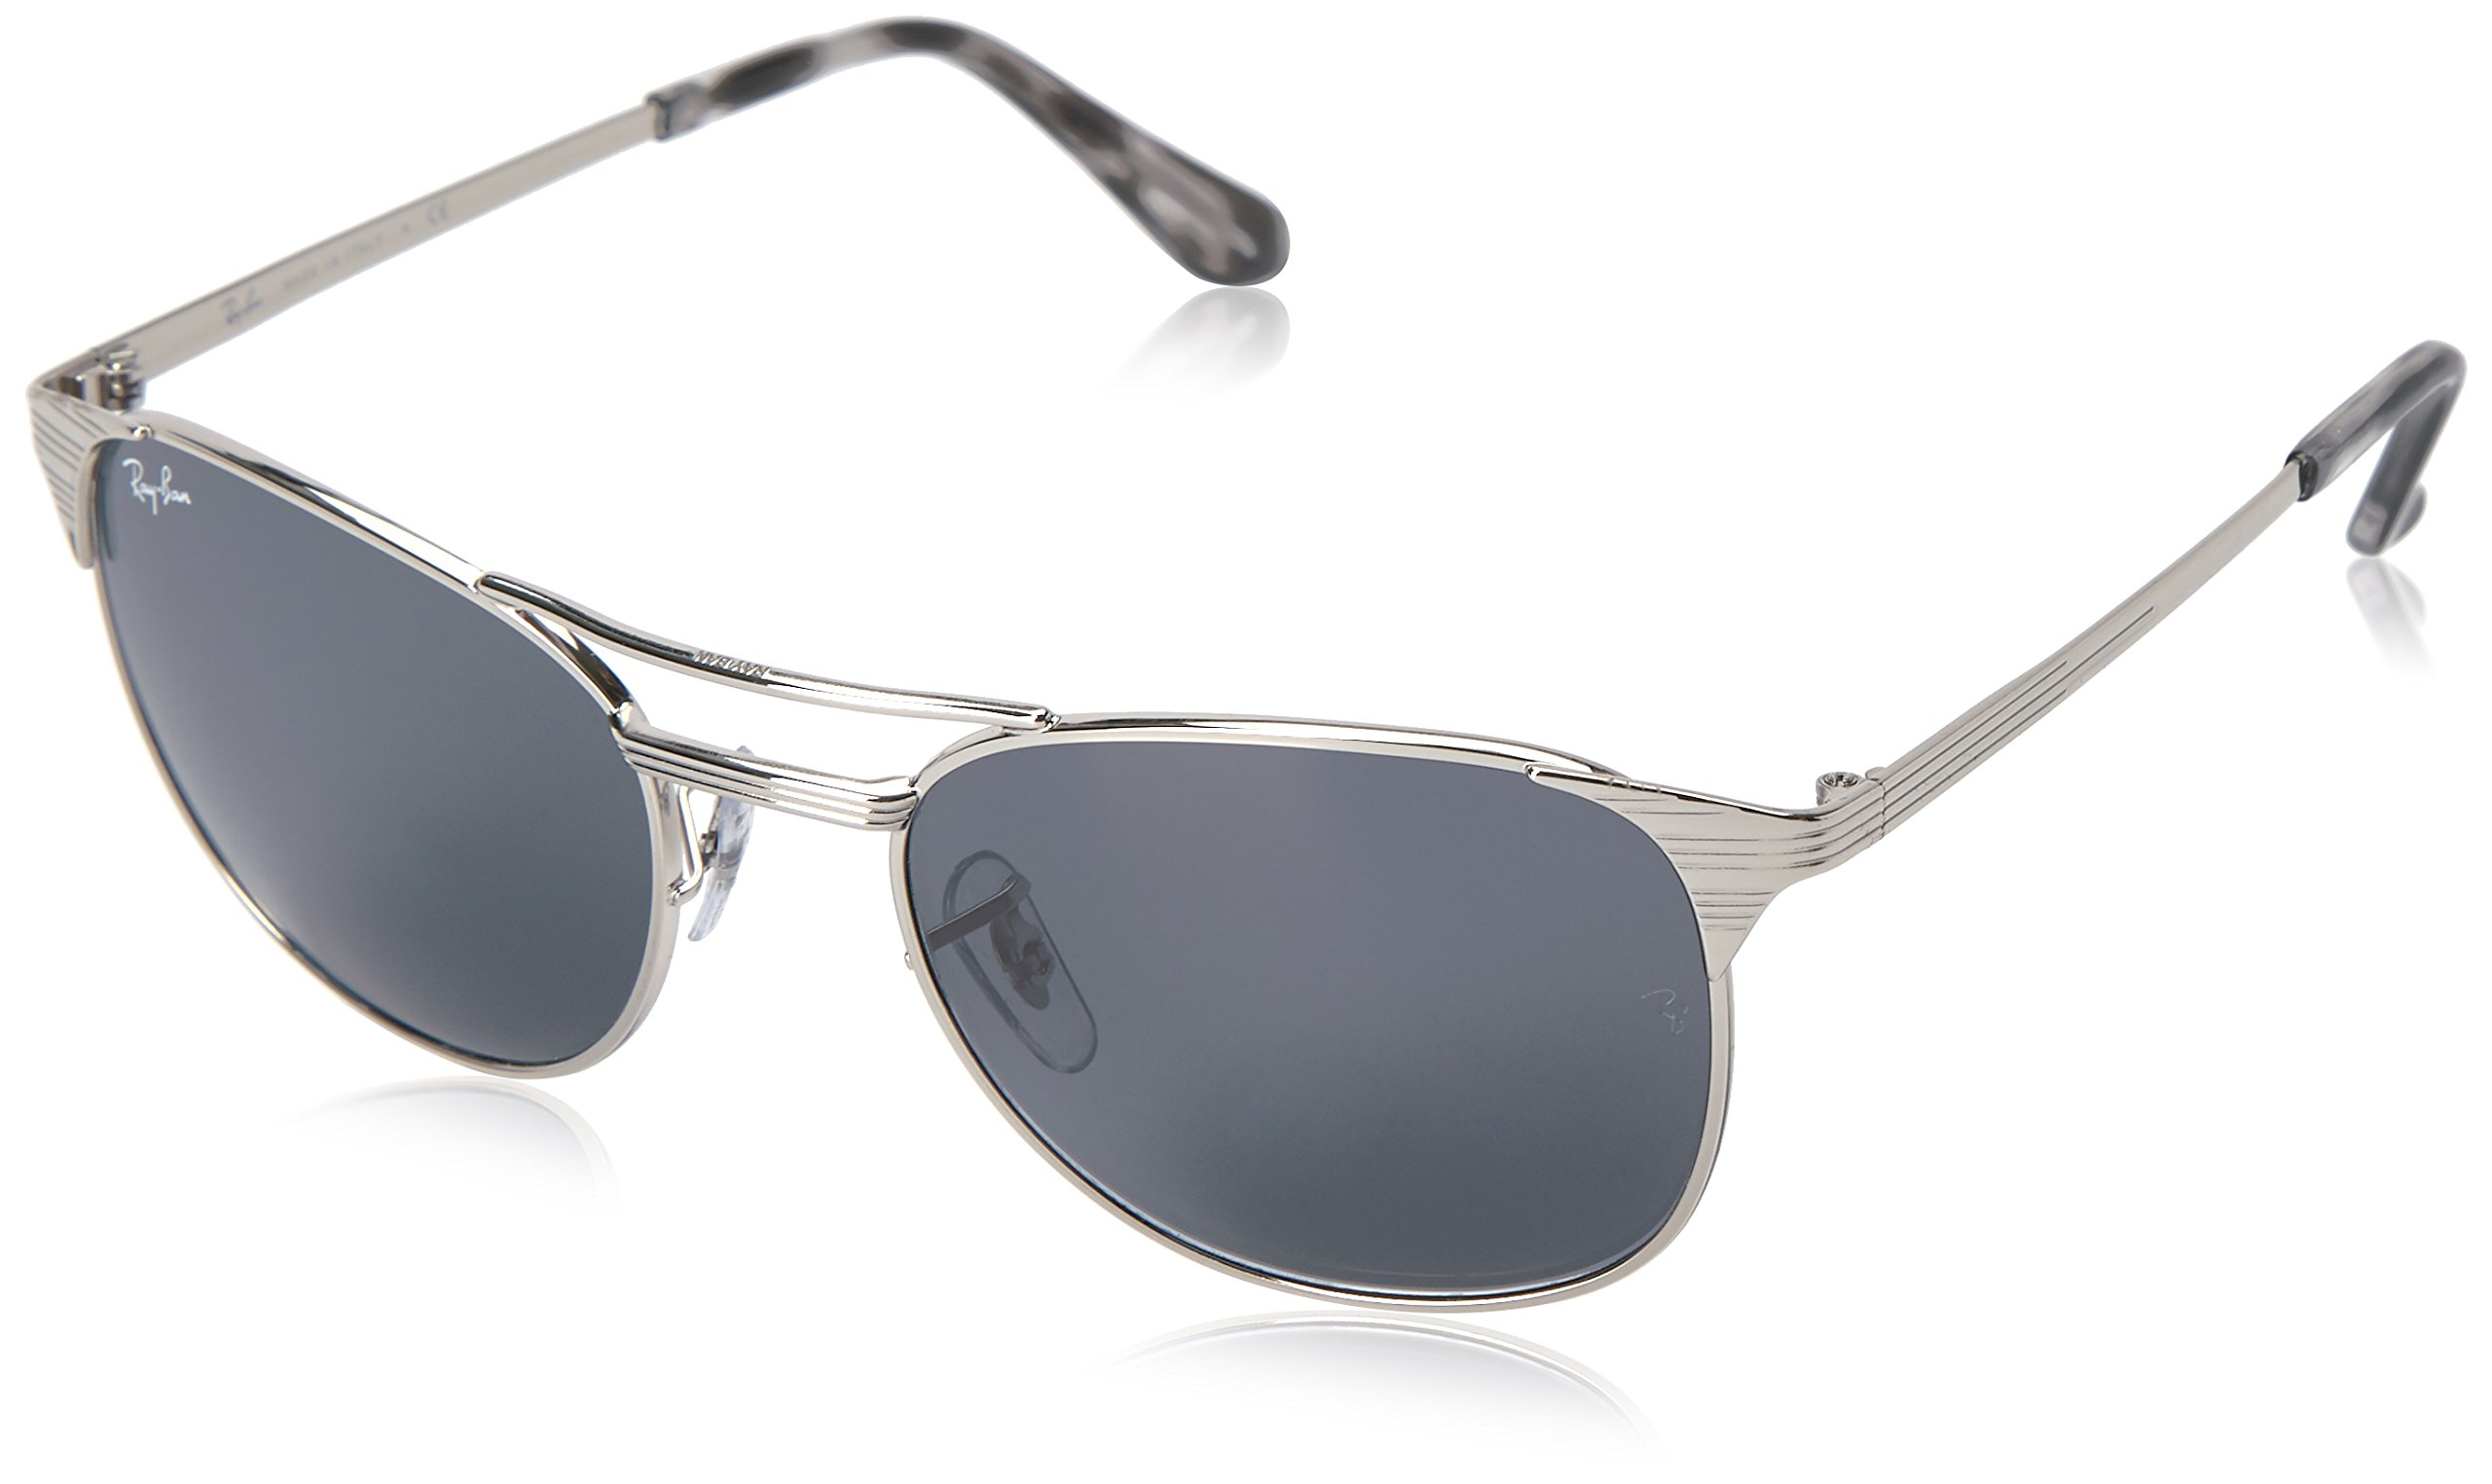 Ray-Ban Men's Metal Man Square Sunglasses, Shiny Silver, 55 mm